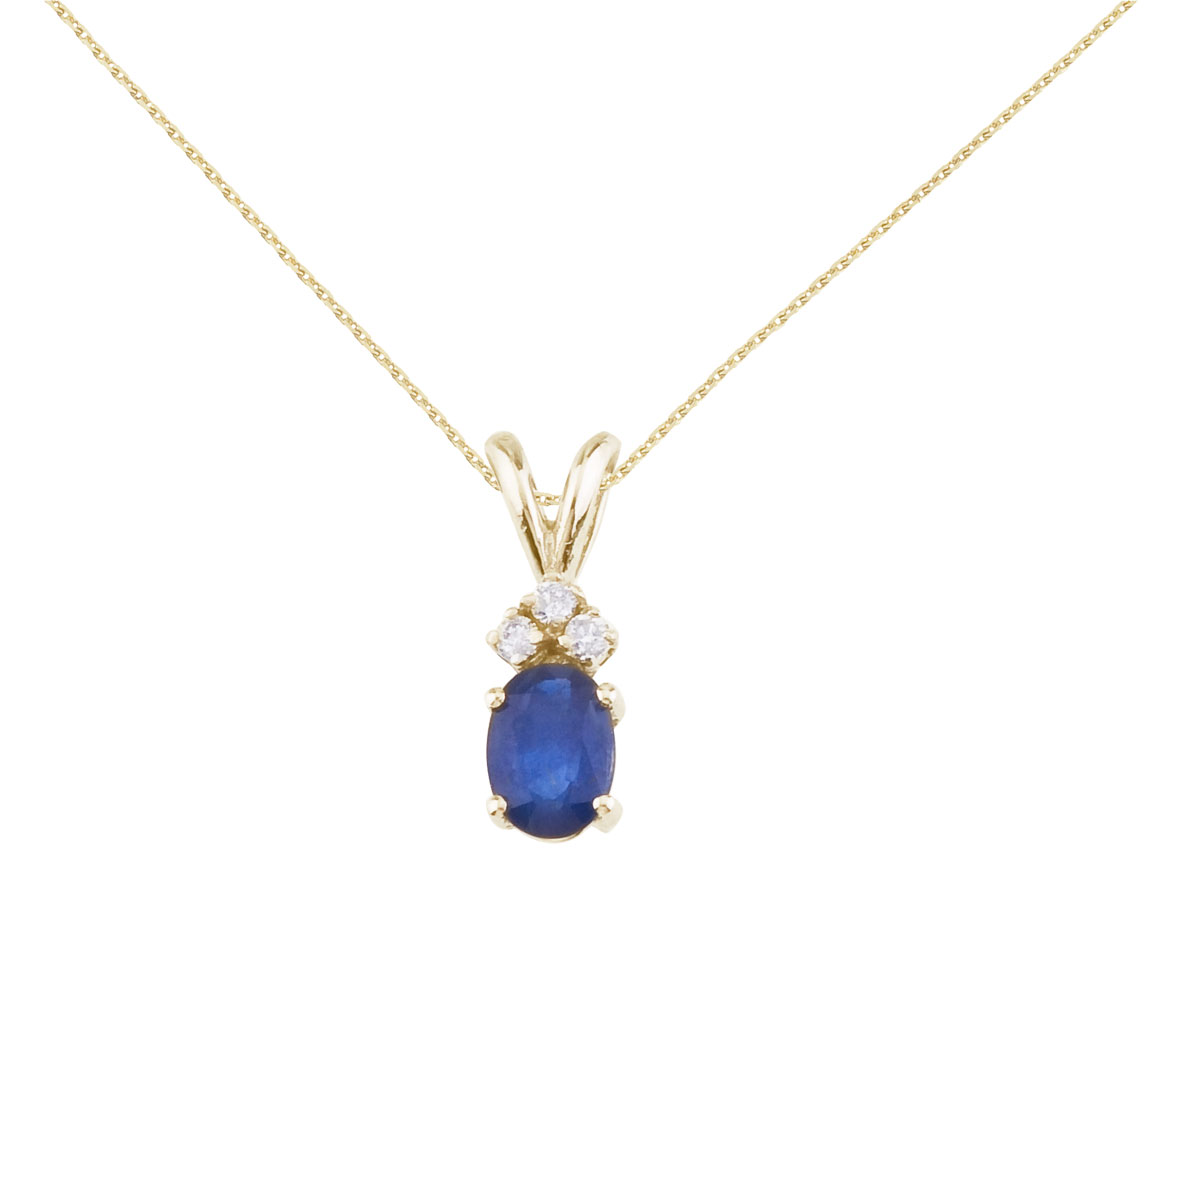 7x5 mm oval natural sapphire pendant topped with 3 bright diamonds set in 14k yellow gold.